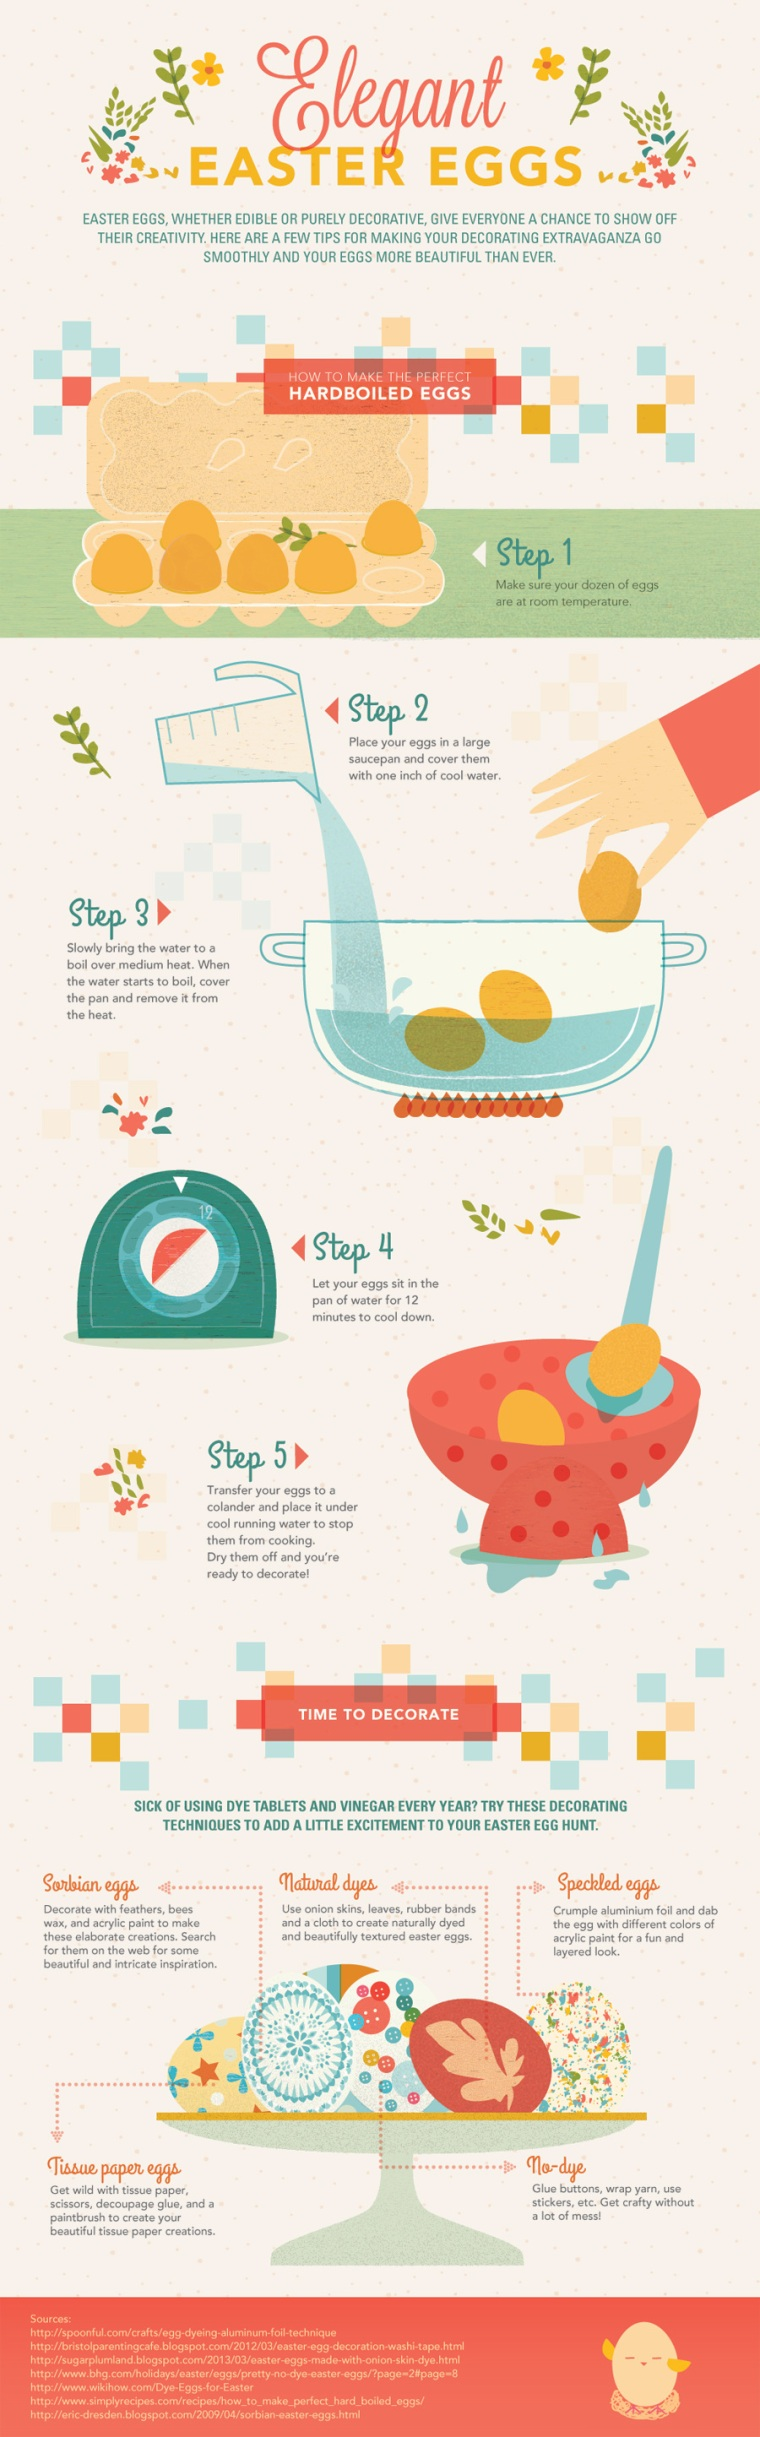 DIY Elegant Easter Eggs [Infographic] | ecogreenlove